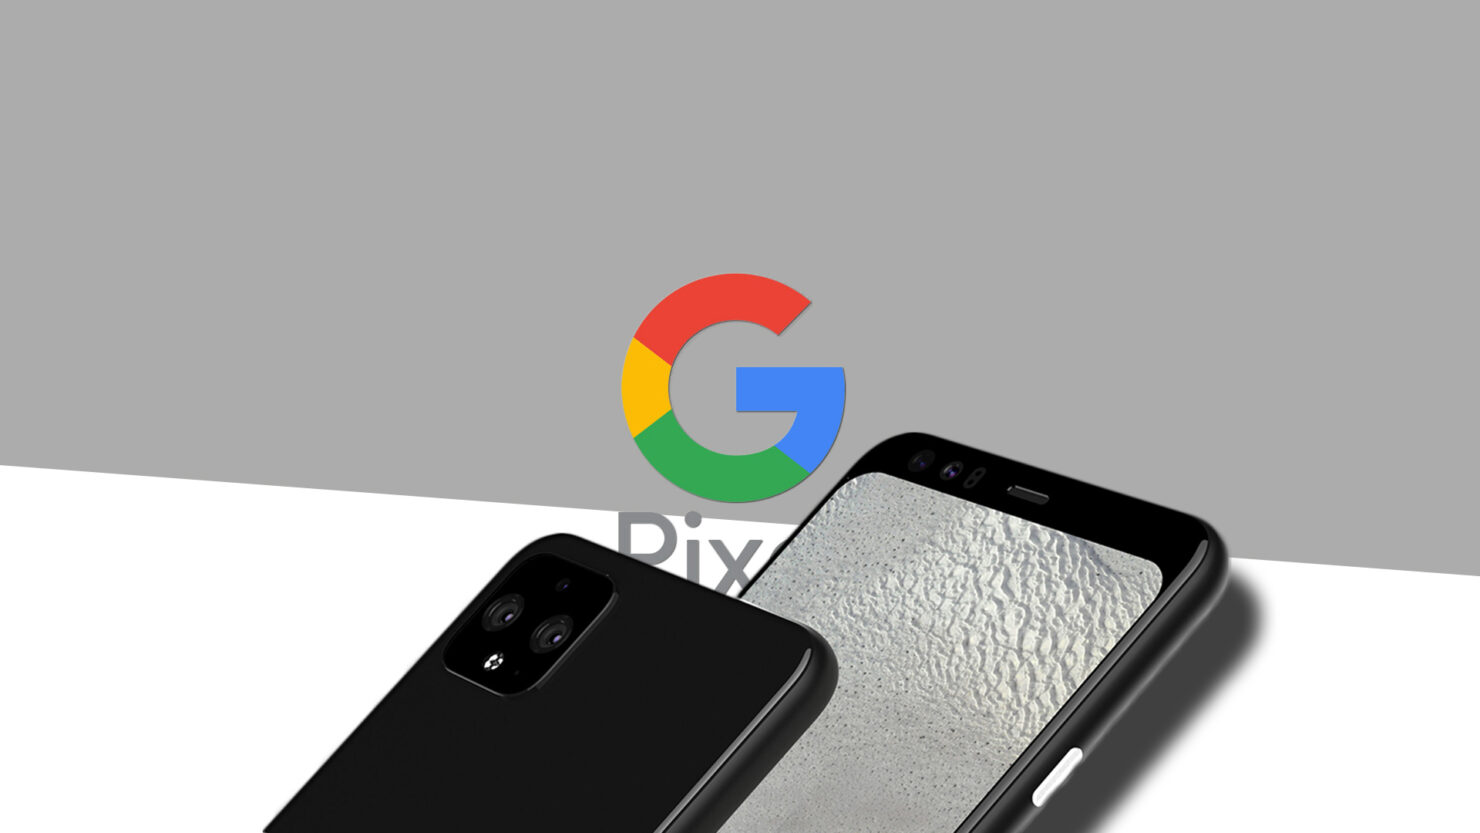 Pixel 4 Storage Speeds Reportedly Slower Than a Few 2019 Flagships